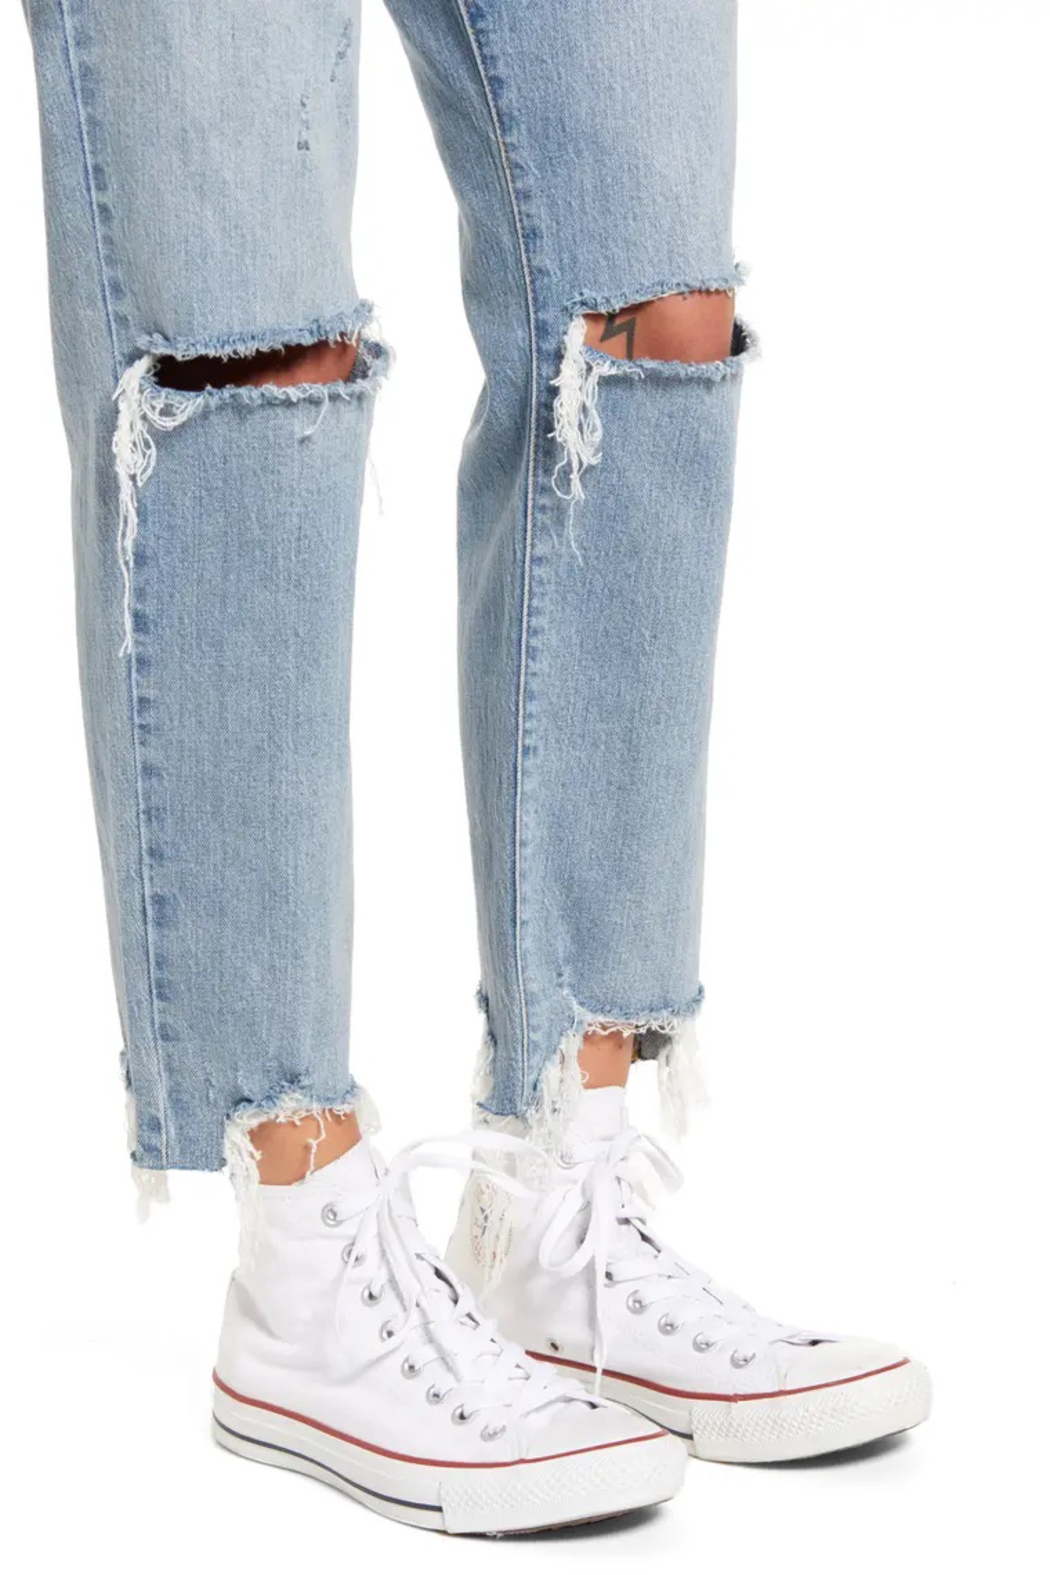 Daze Straight Up Ripped Ankle Skinny Jeans - Back Cropped Image